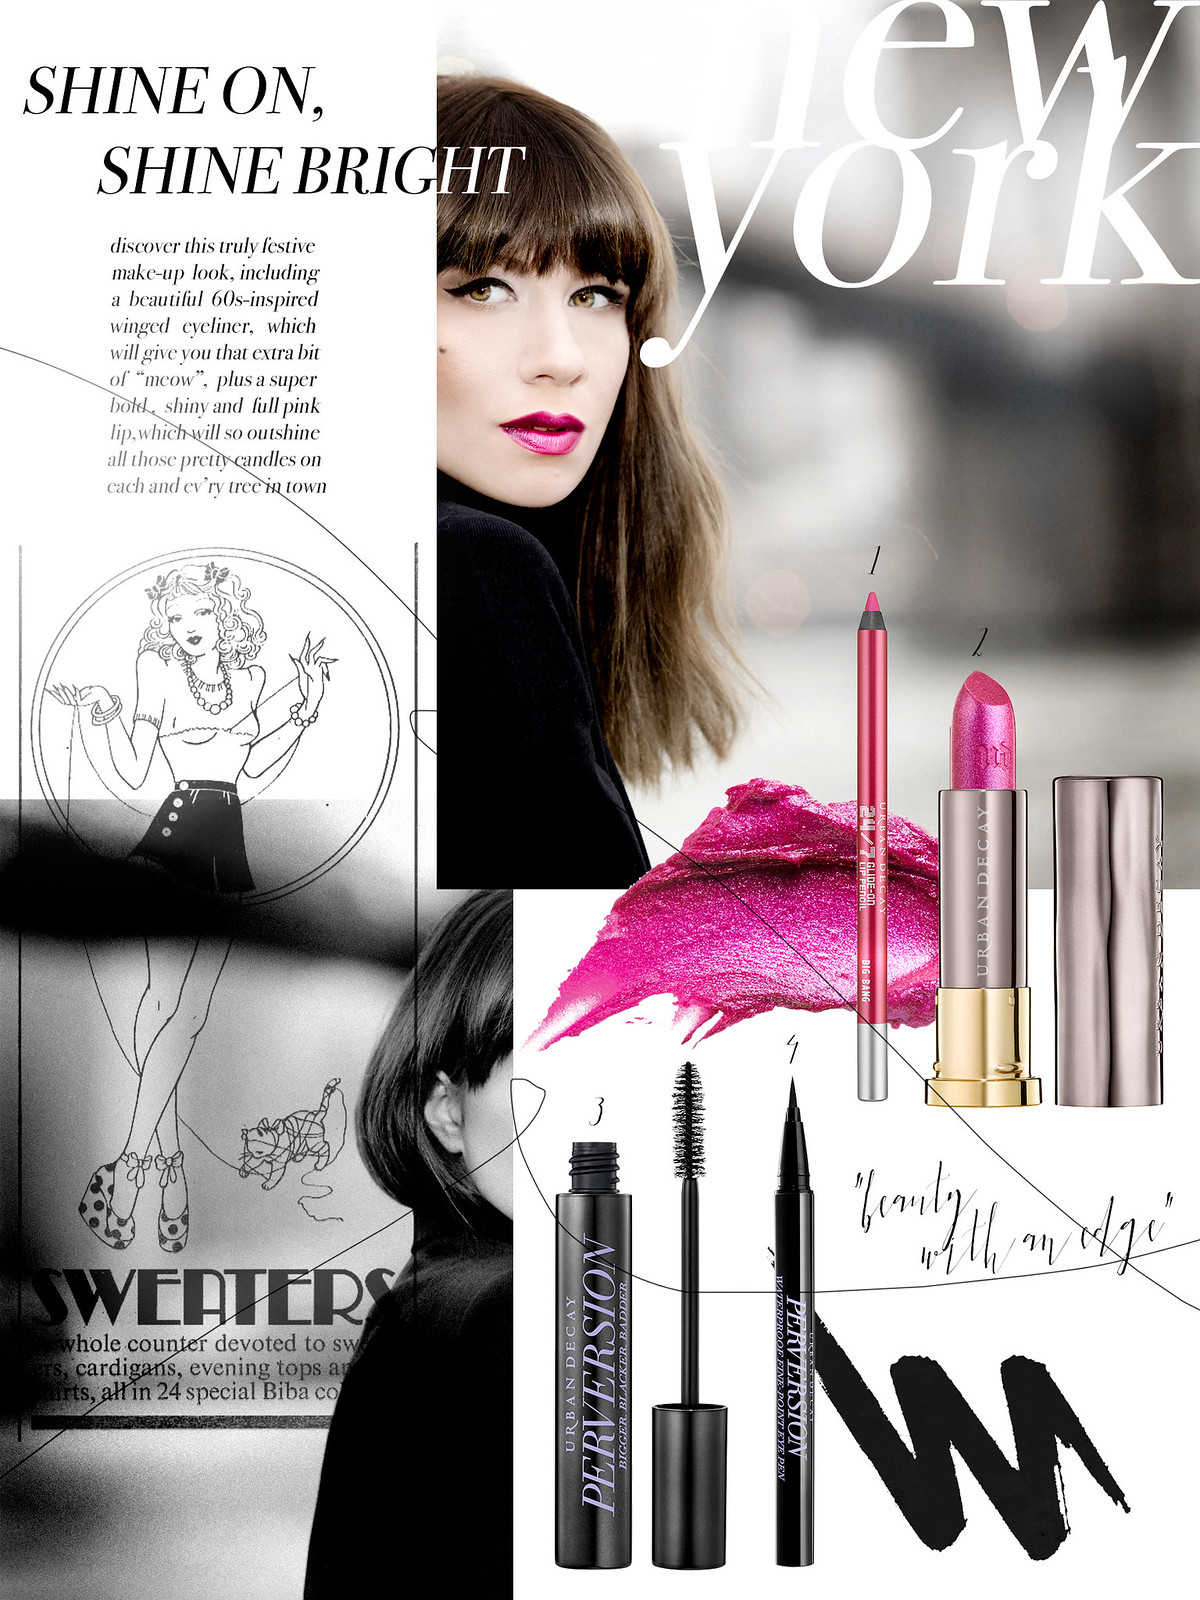 urban decay new york city brooklin bridge beauty with an edge magazine style trends collage beautyblogger lipstick christmas festive makeup styling pink brown metallic cats & dogs beautyblog ricarda schernus bangs brunette berlin fashionblogger 3